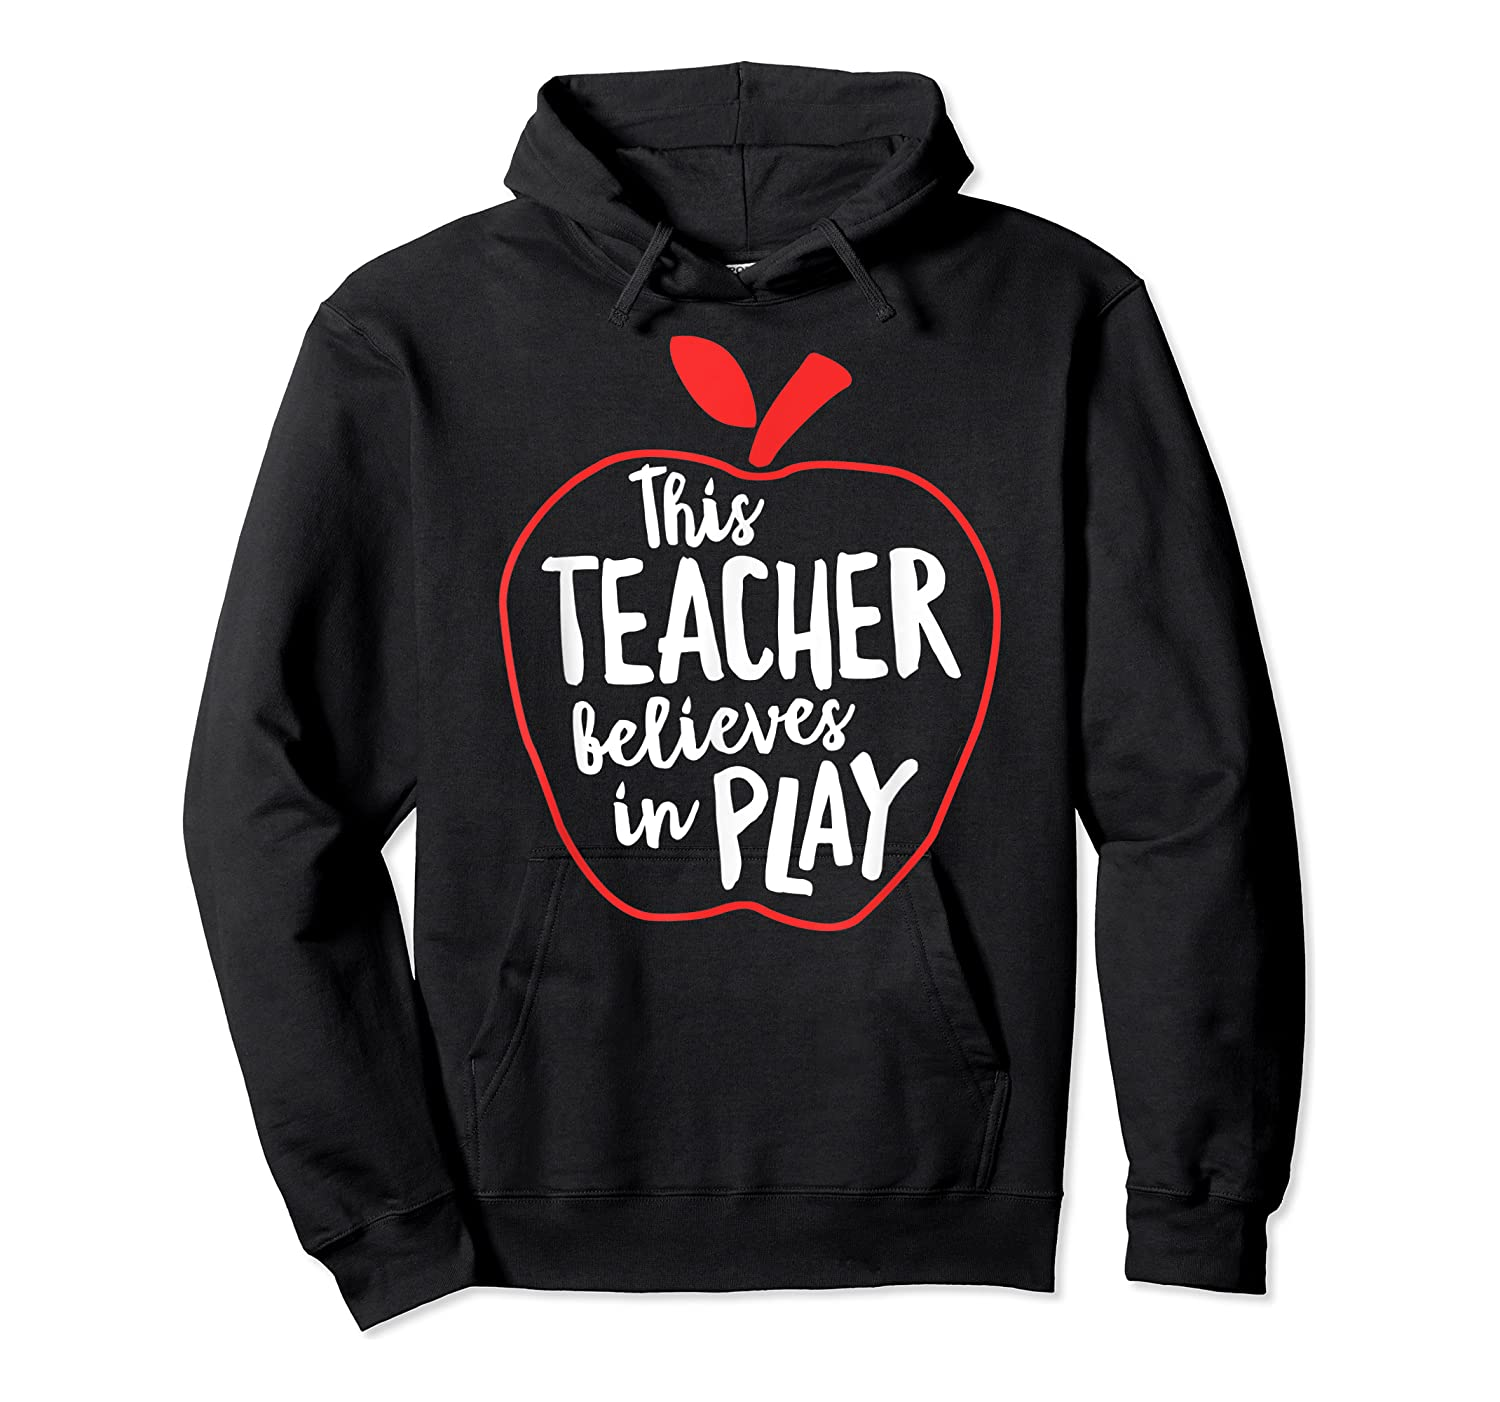 This Tea Believes In Play Tea Shirt With Apple T-shirt Unisex Pullover Hoodie